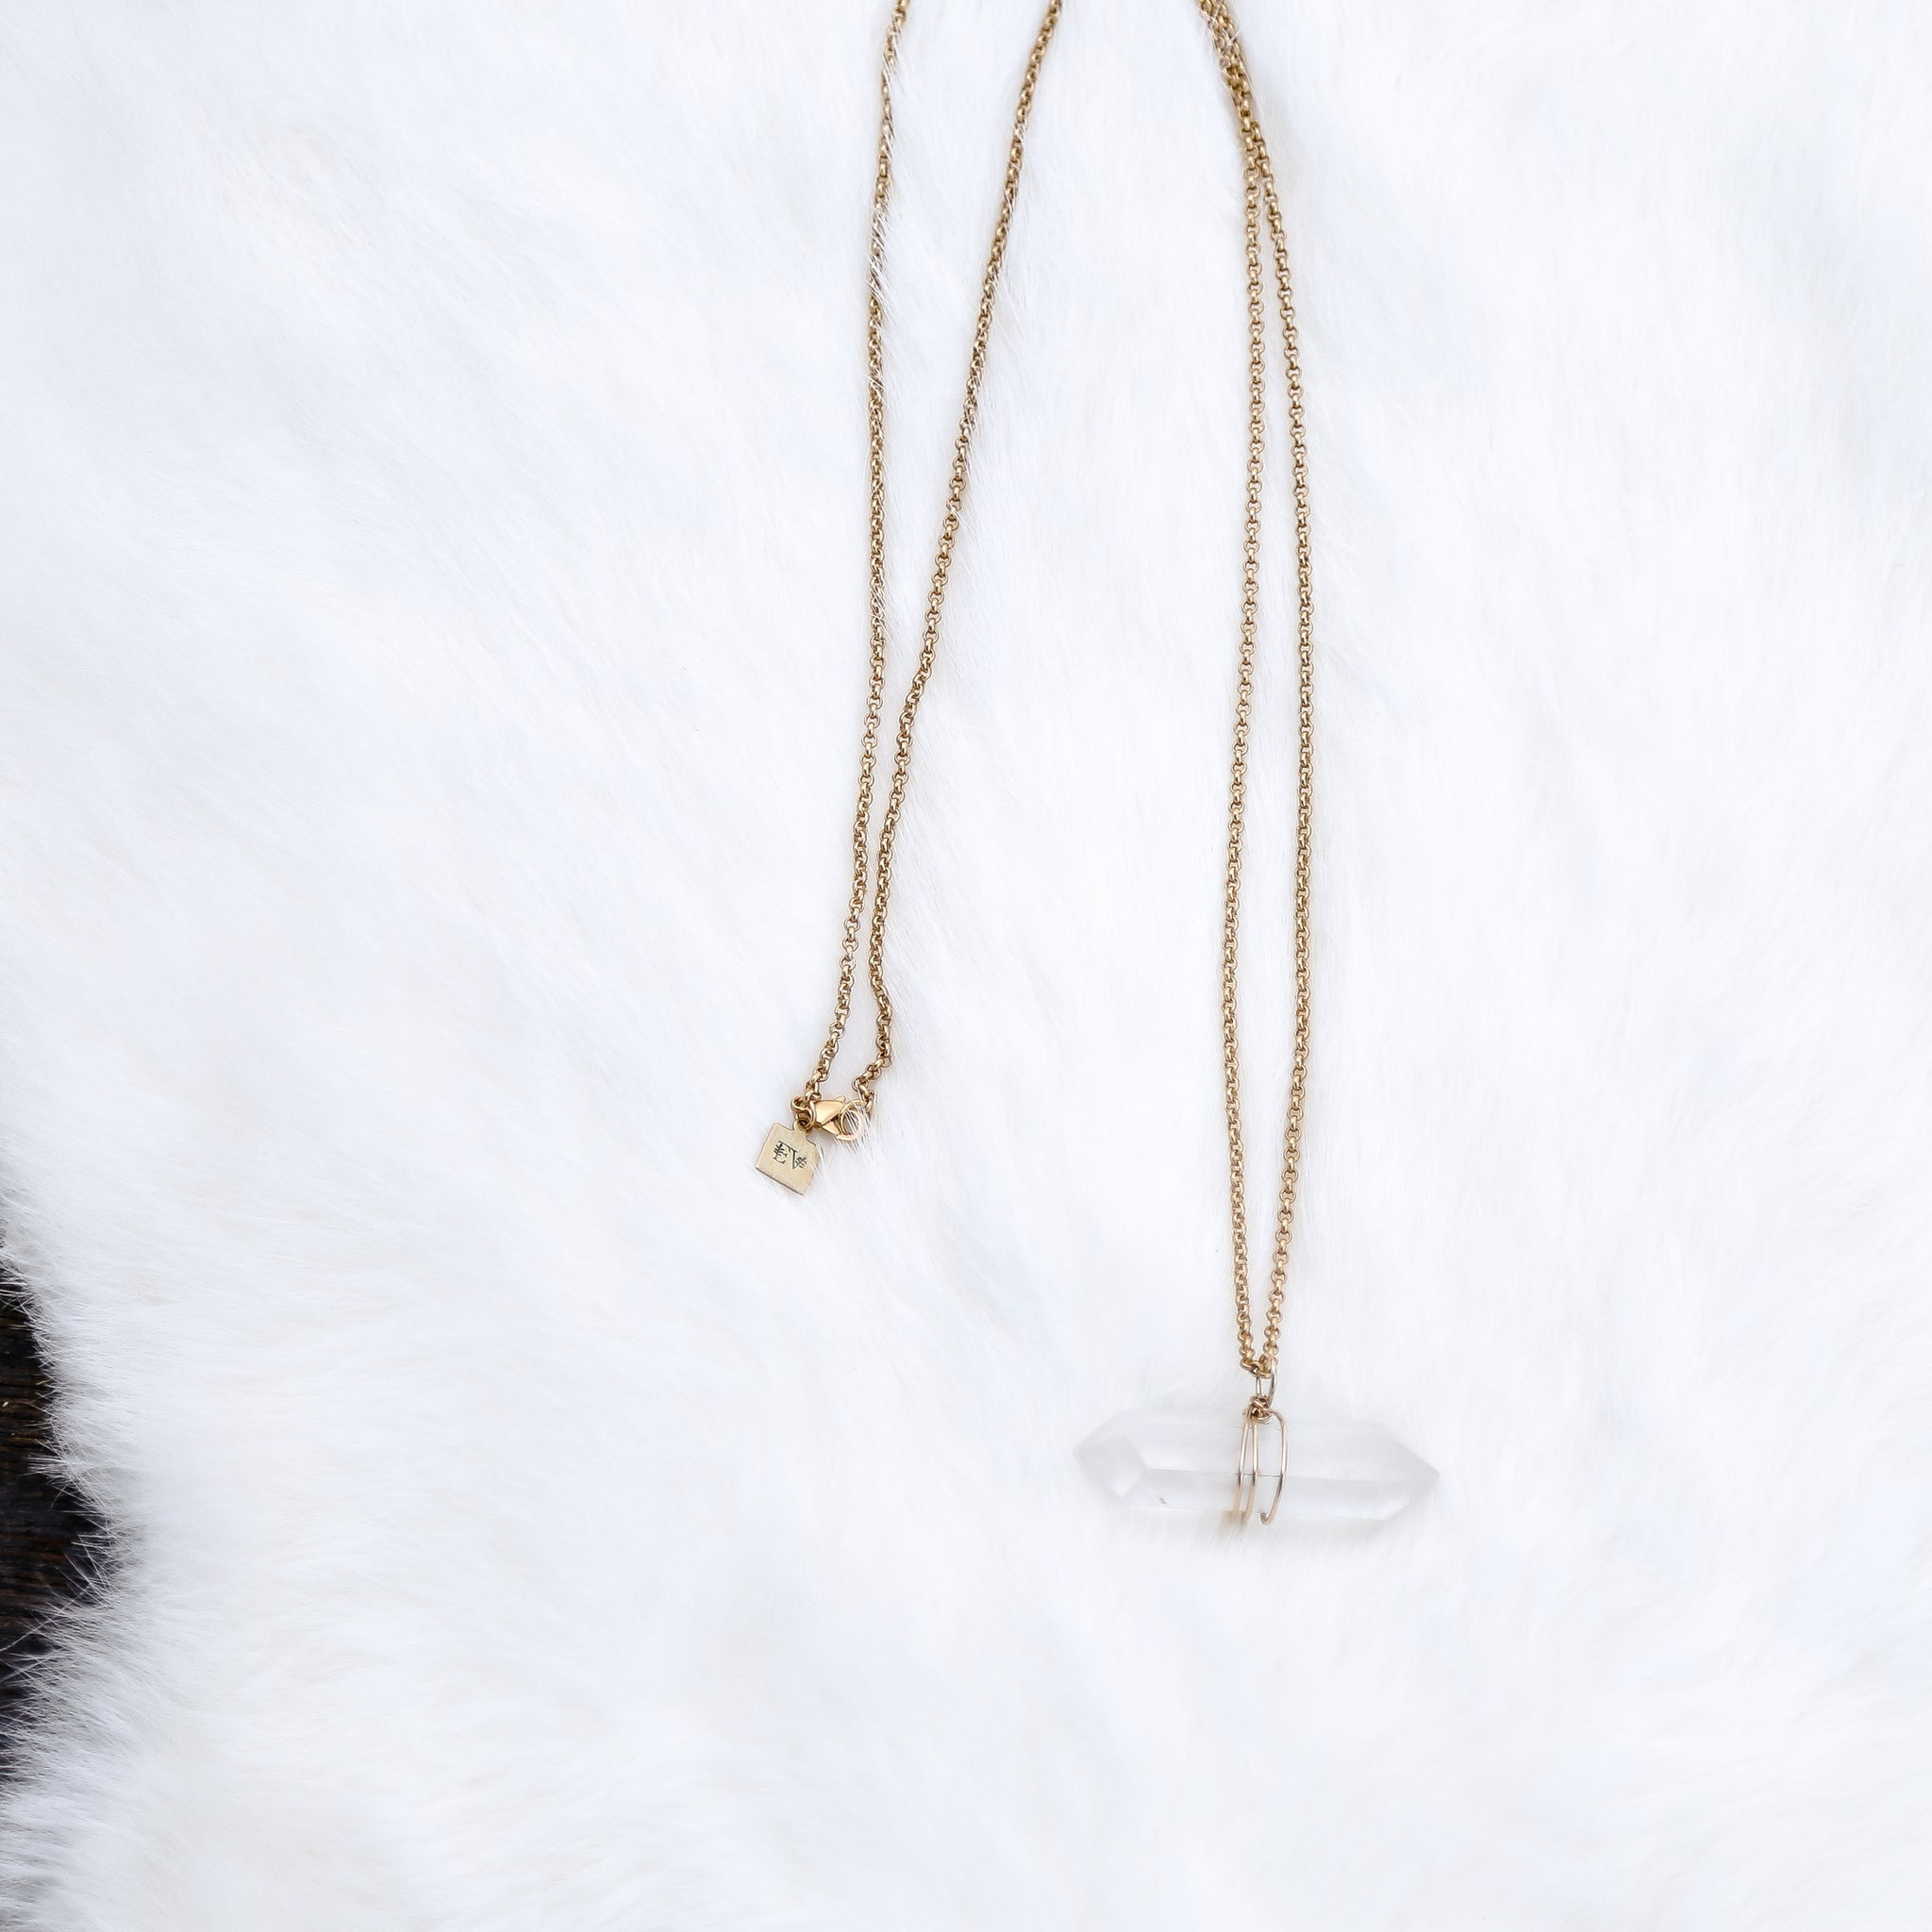 Cloudy Crystal Quartz Necklace